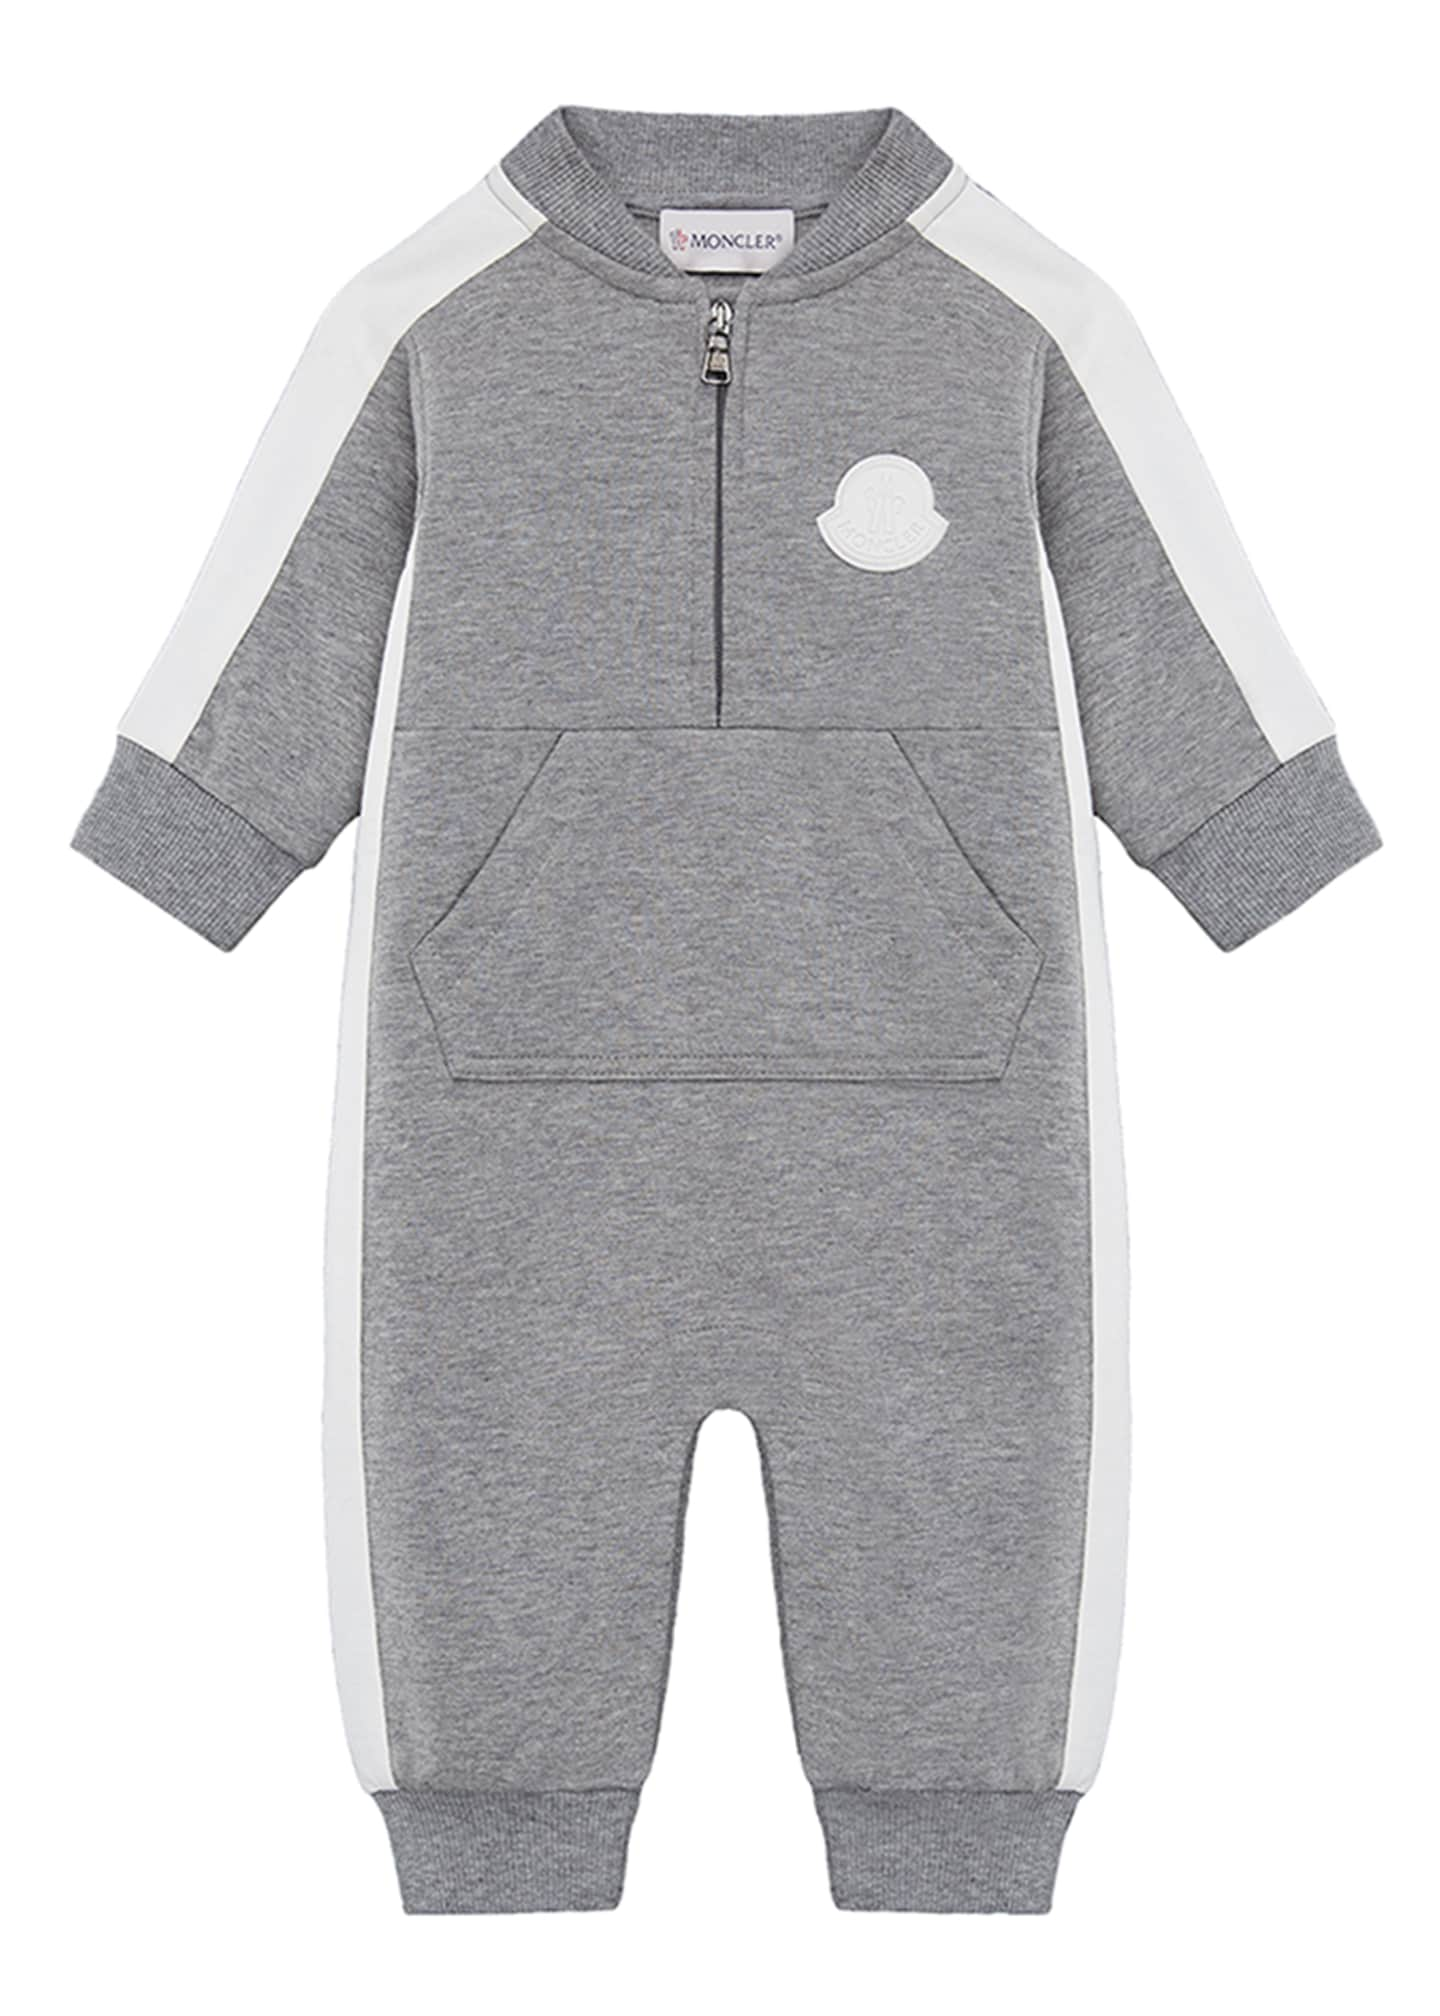 Moncler Heathered Coverall w/ Contrast Trim, Size 3-24